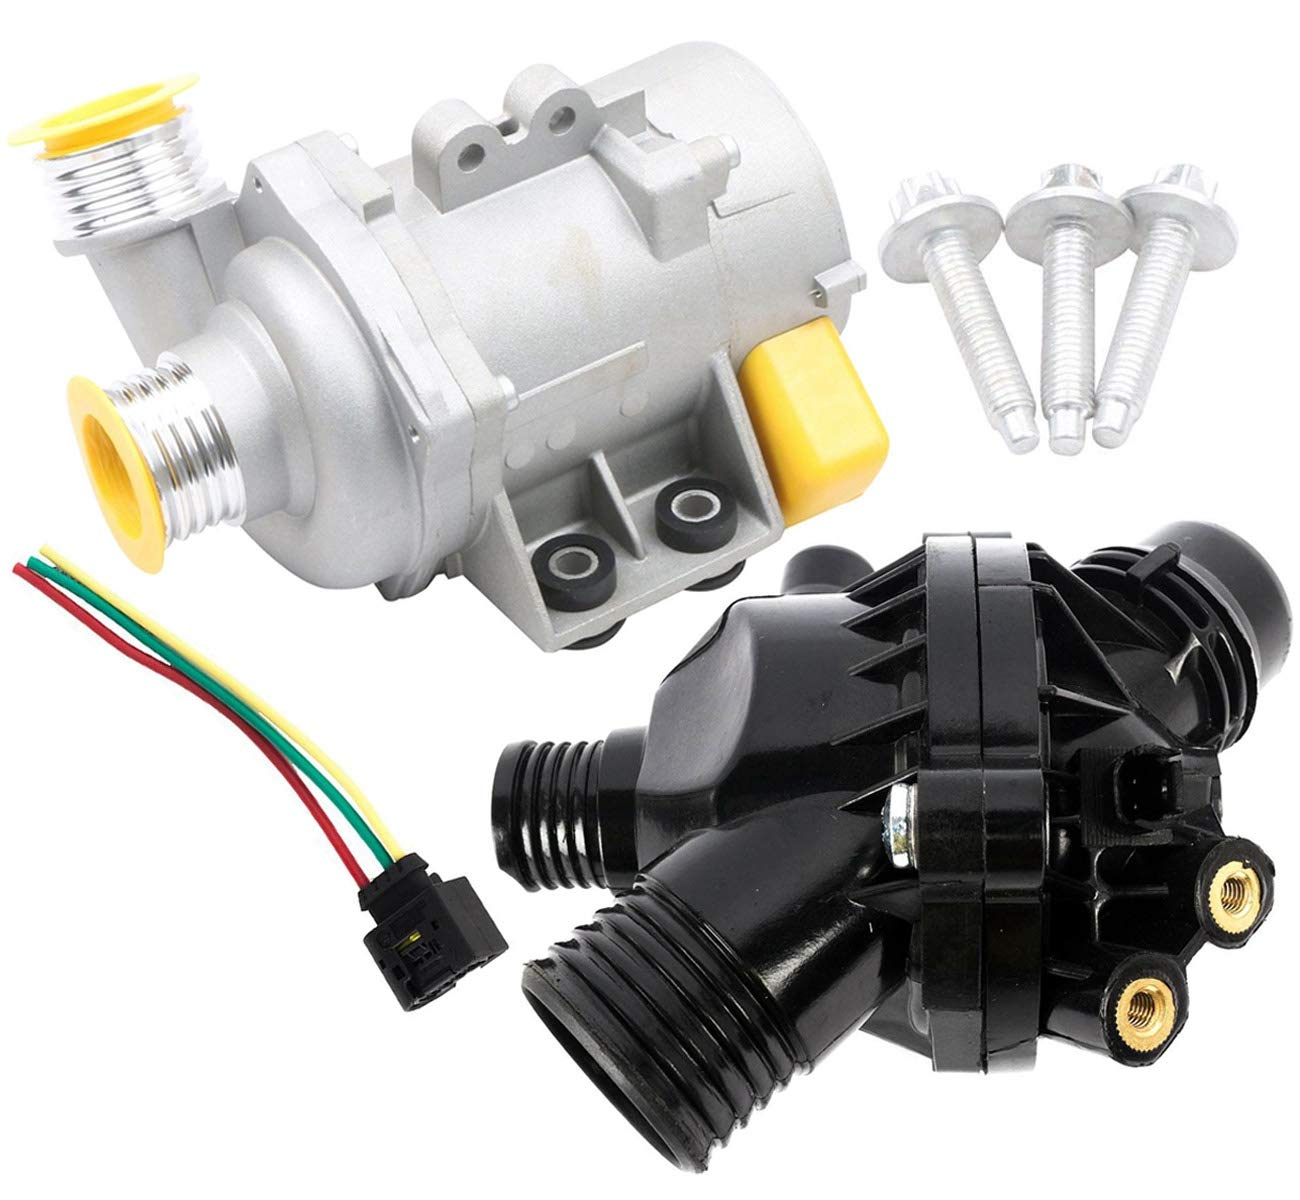 KARPAL Engine Water Pump and Thermostat Wire Harness Bolt 11517586925 Compatible With BMW E90 E91 X3 Z4 328i 530xi 325i by KARPAL